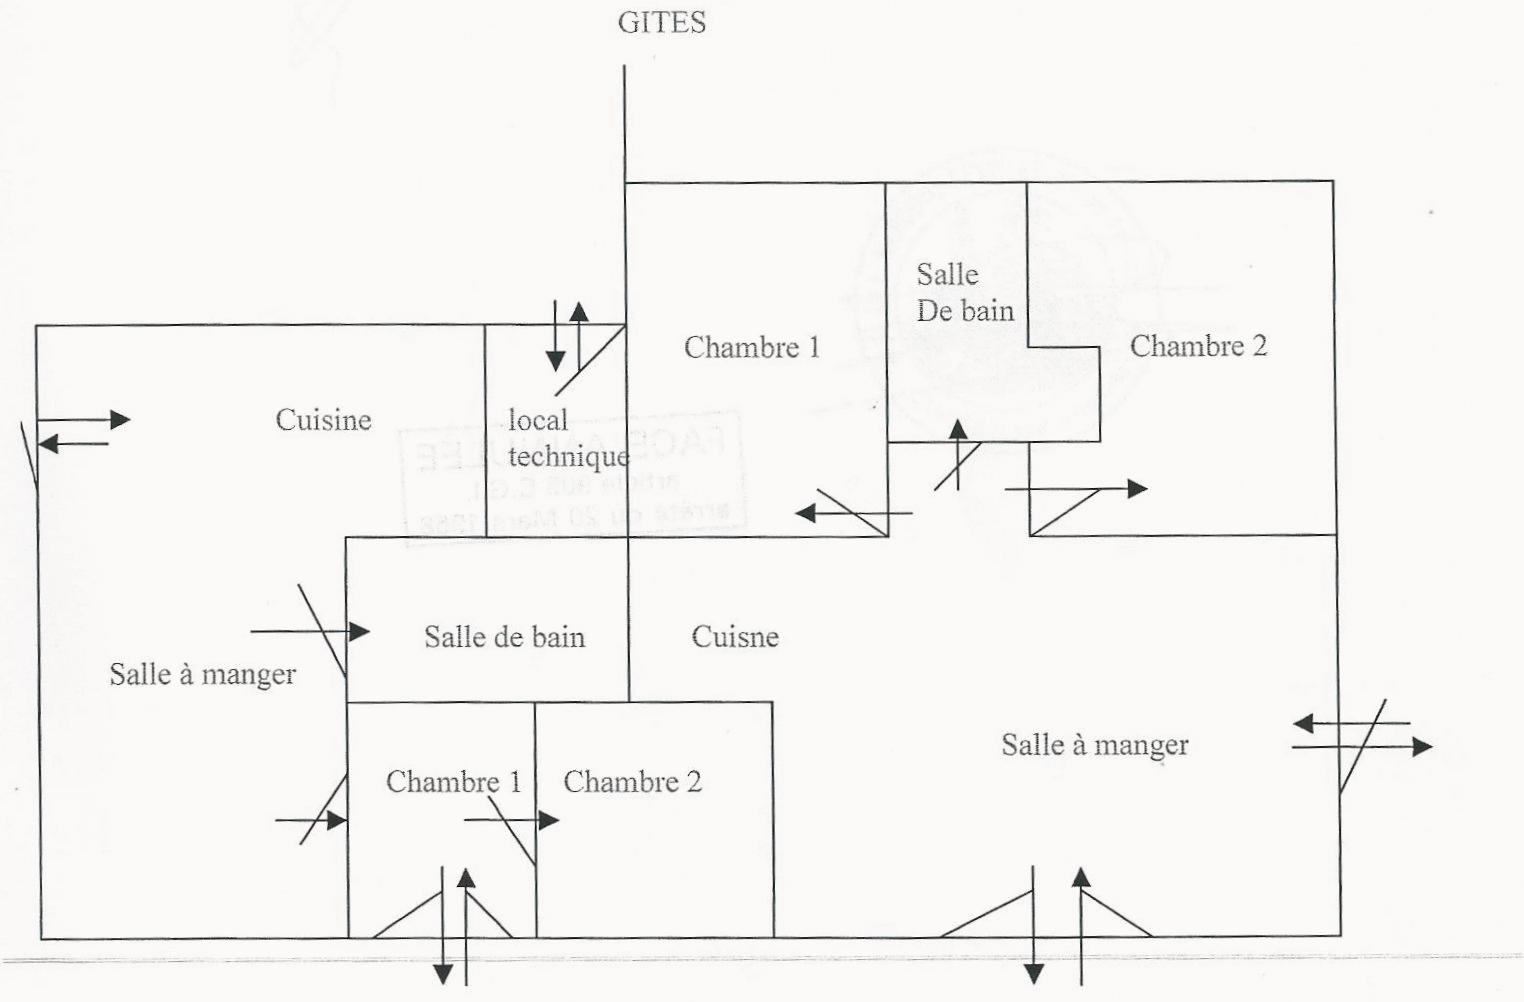 Gite - not to scale